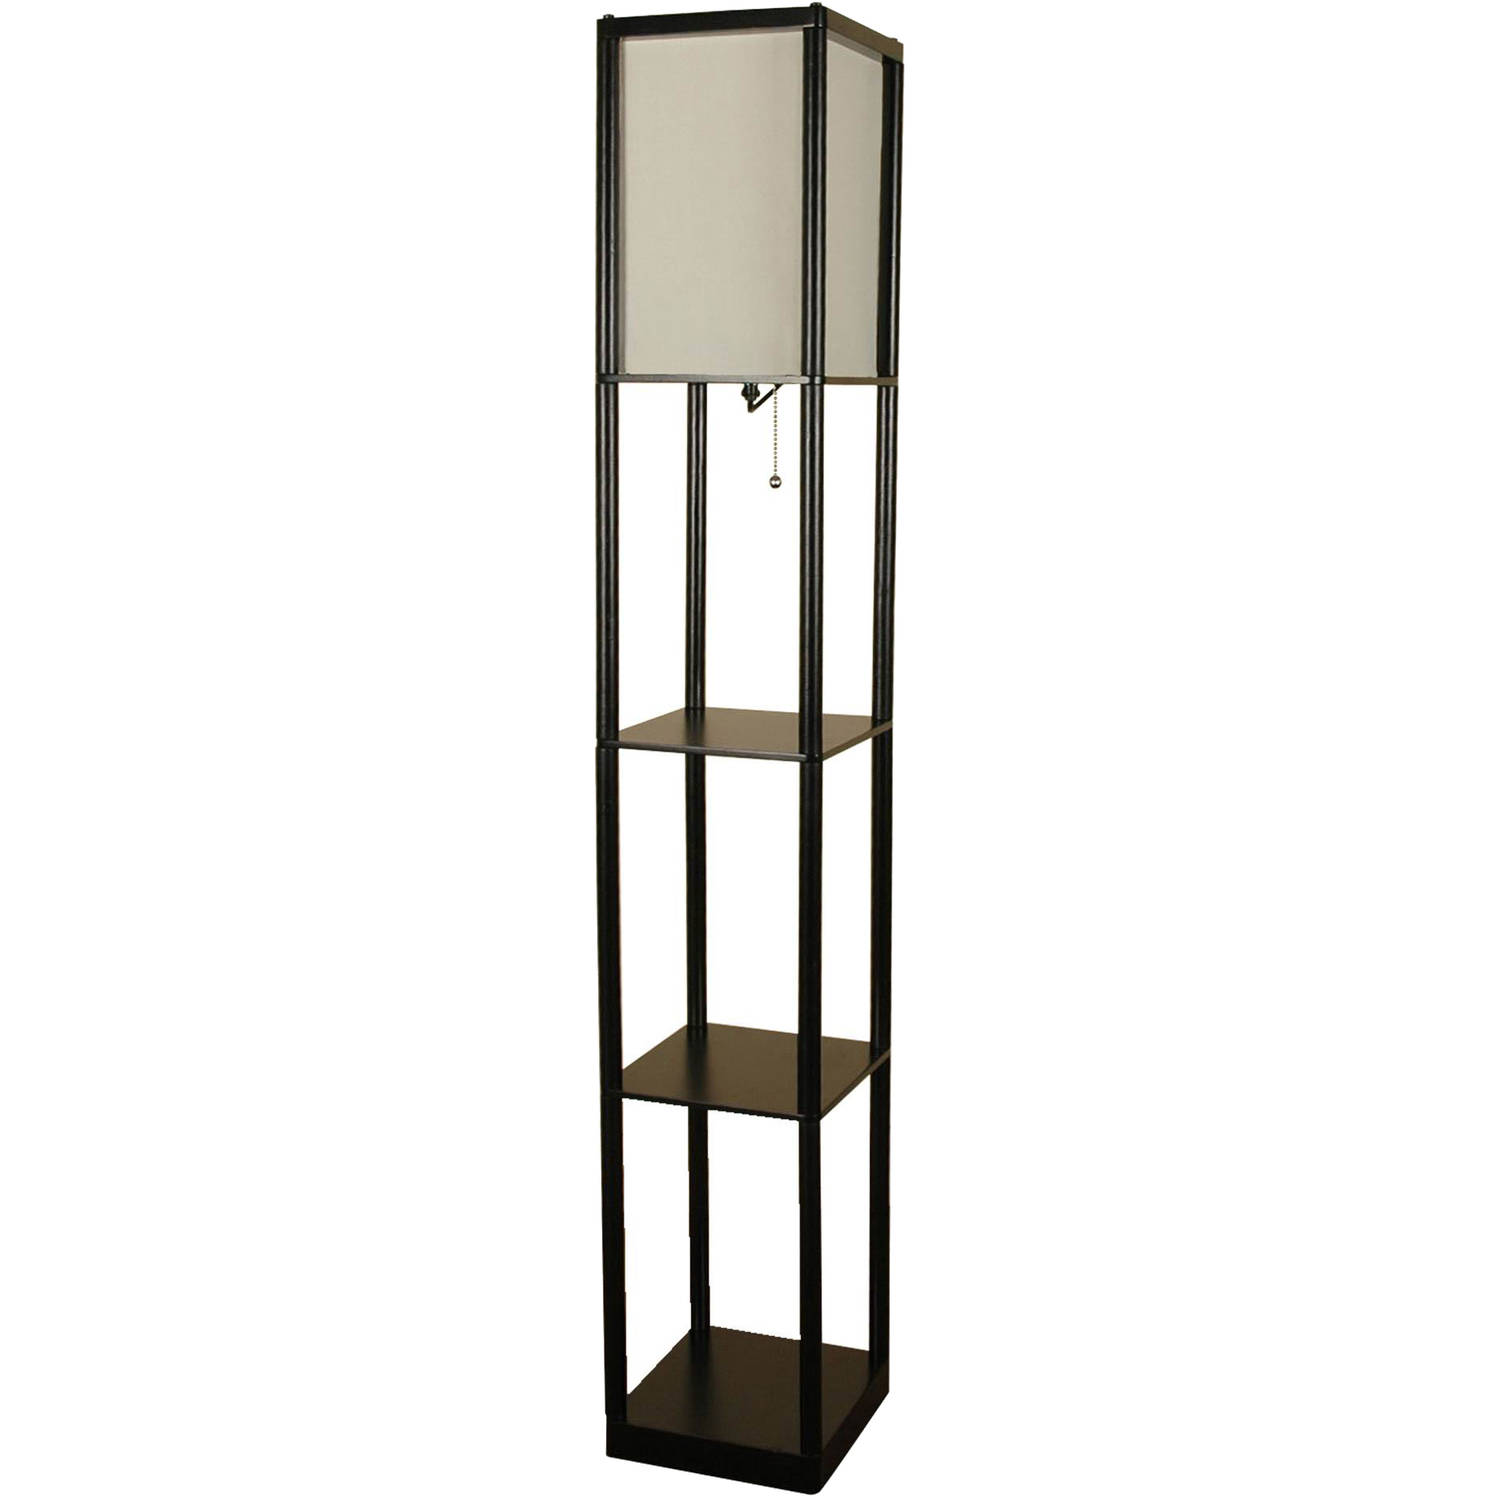 Great Mainstays Black Shelf Floor Lamp With White Shade On/Off CFL Bulb Included    Walmart.com